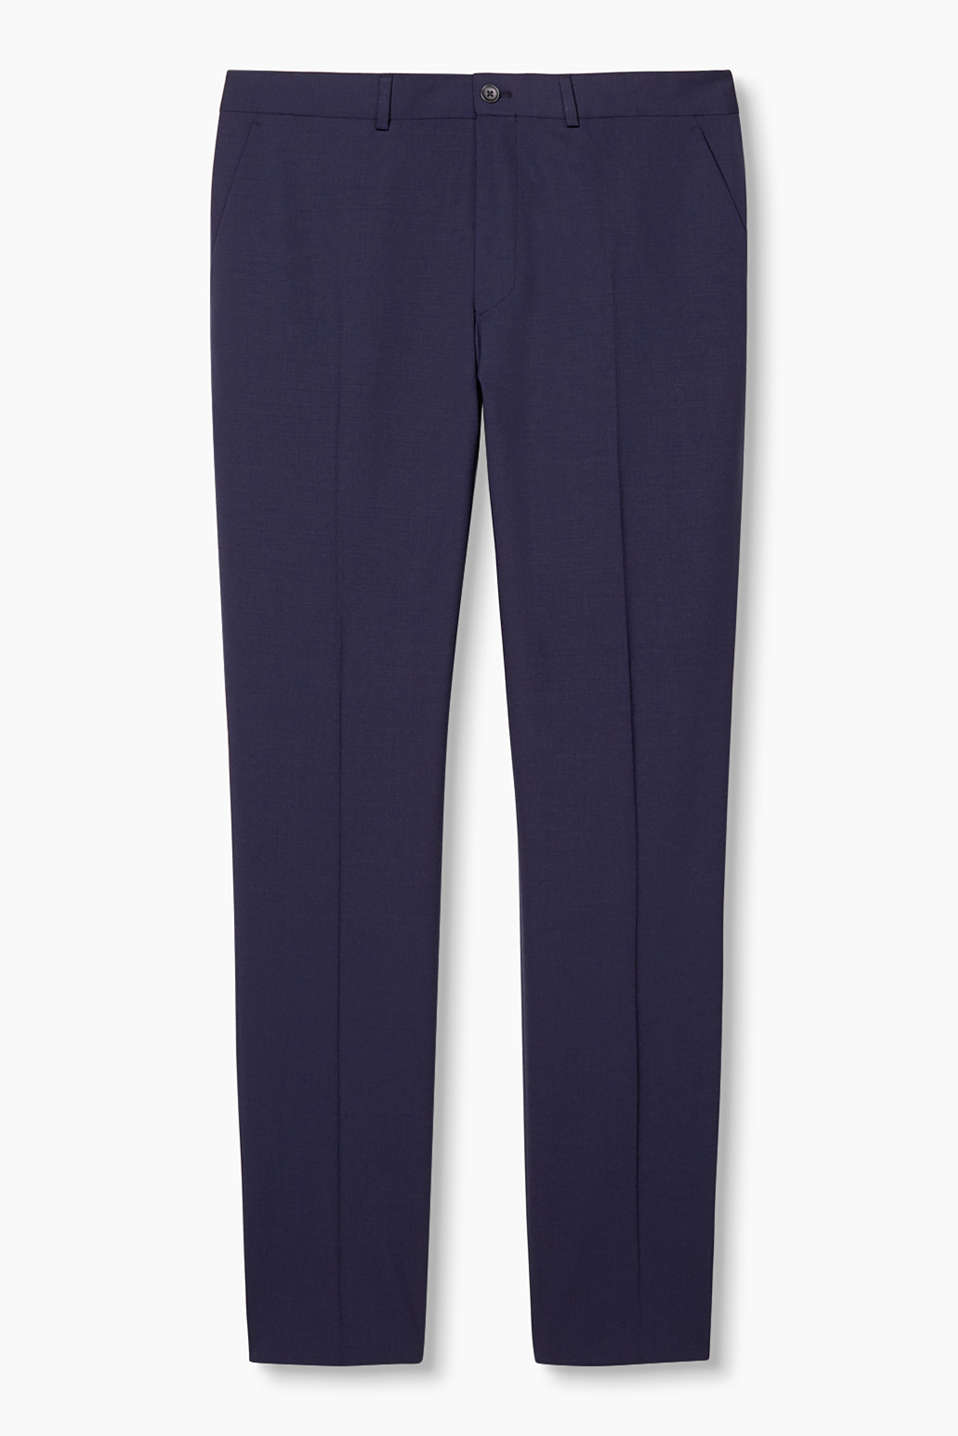 Esprit - new wool suit trousers